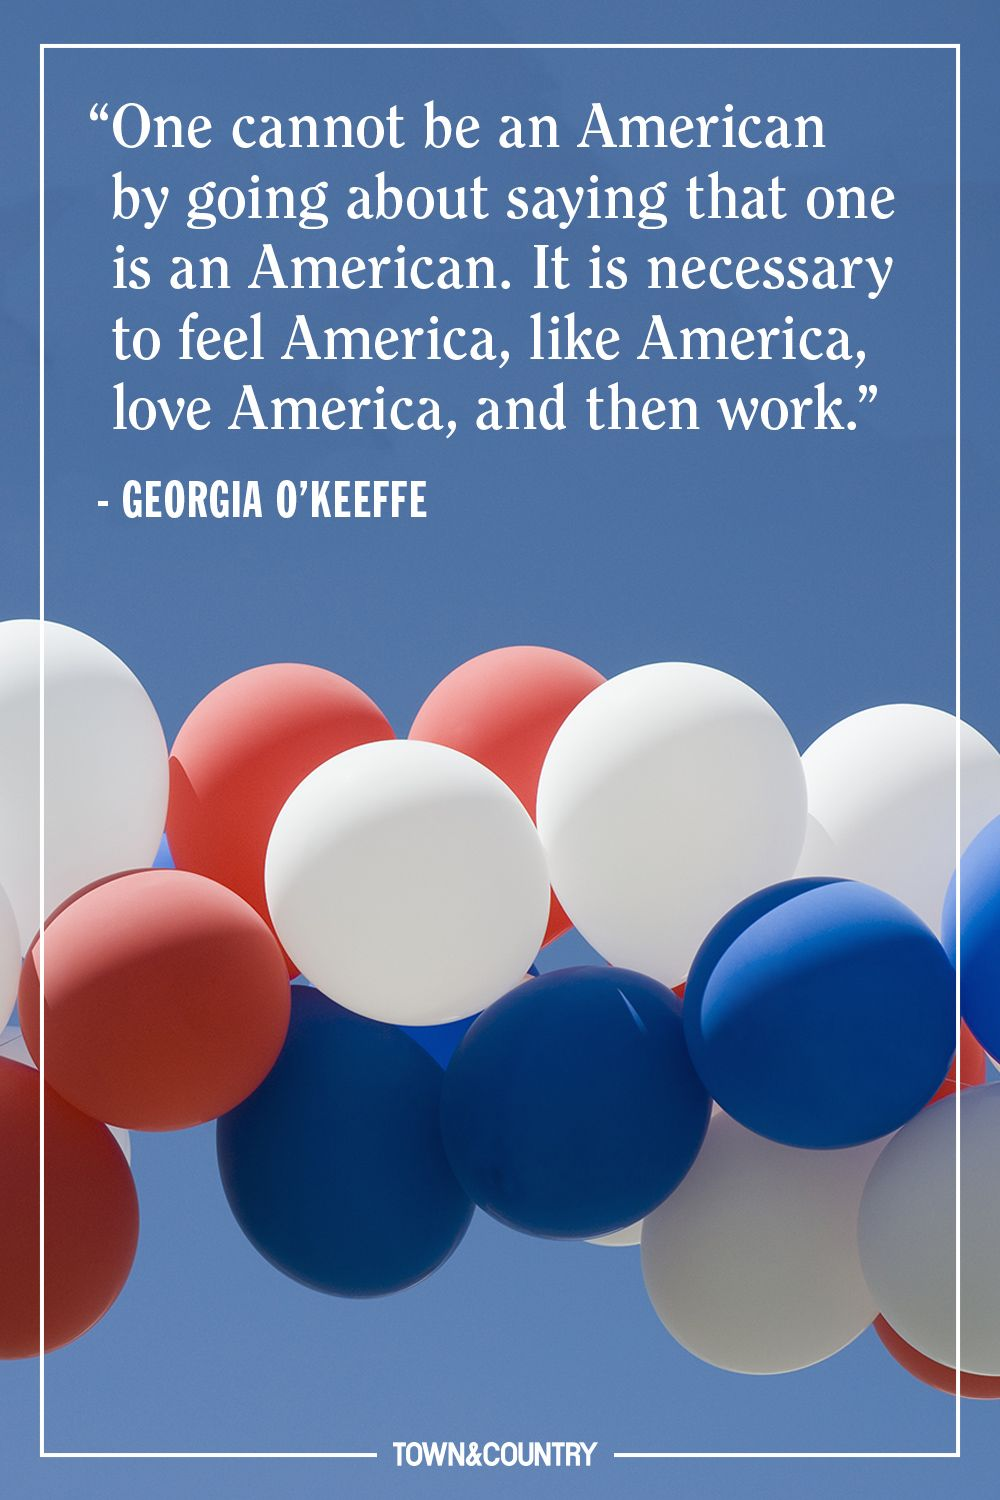 """""""One cannot be an American by going about saying that one is an American. It is necessary to feel America, like America, love America, and then work."""" — Georgia O'Keeffe"""